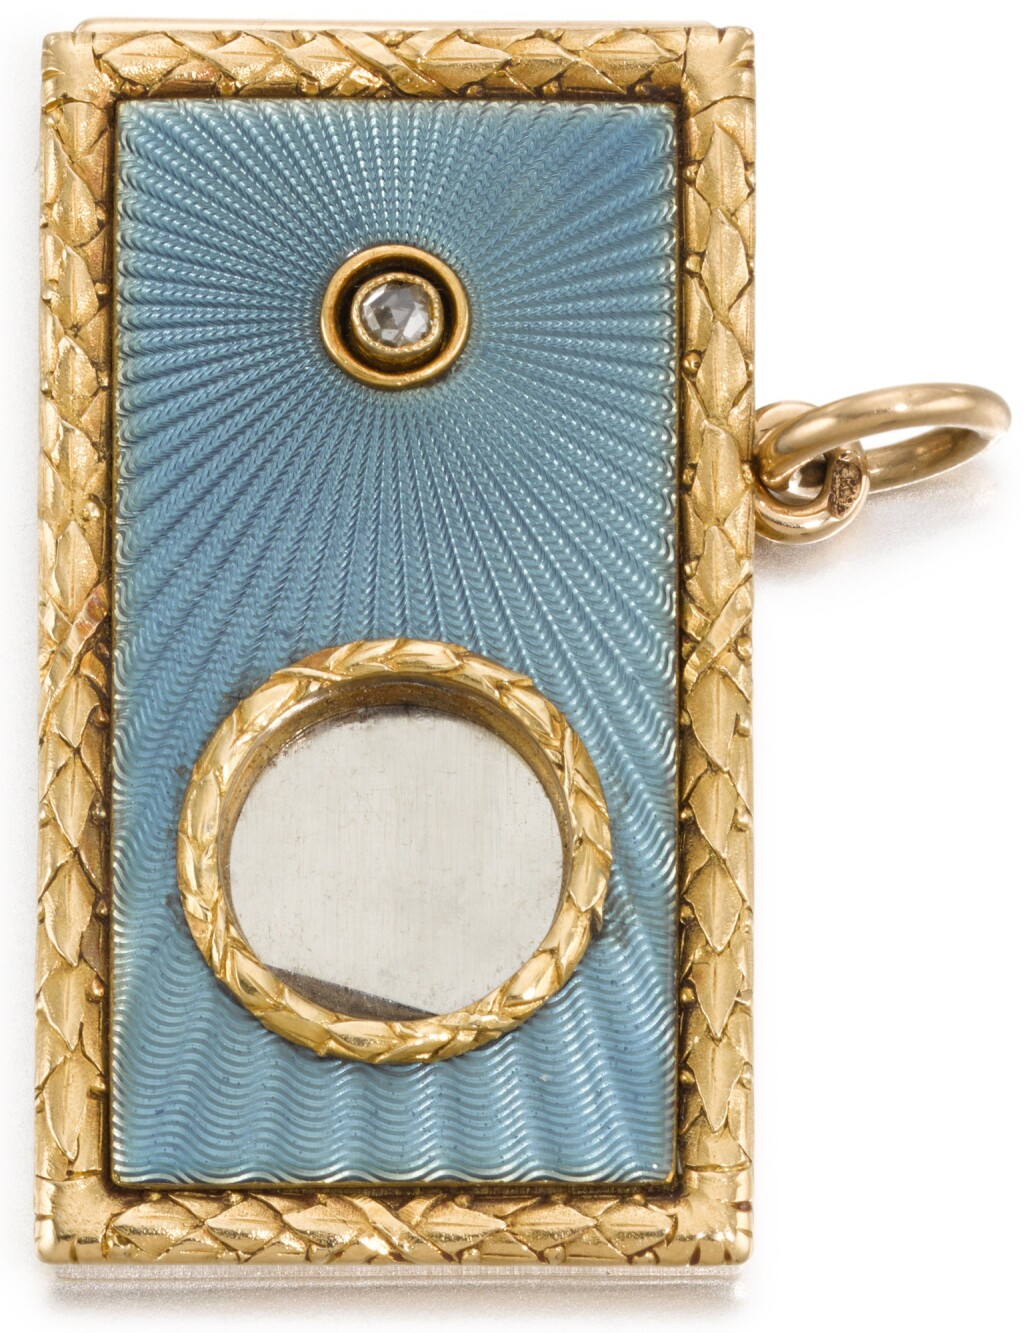 A JEWELLED GOLD AND GUILLOCHÉ ENAMEL CIGAR CUTTER, IN THE STYLE OF FABERGÉ, 20TH CENTURY